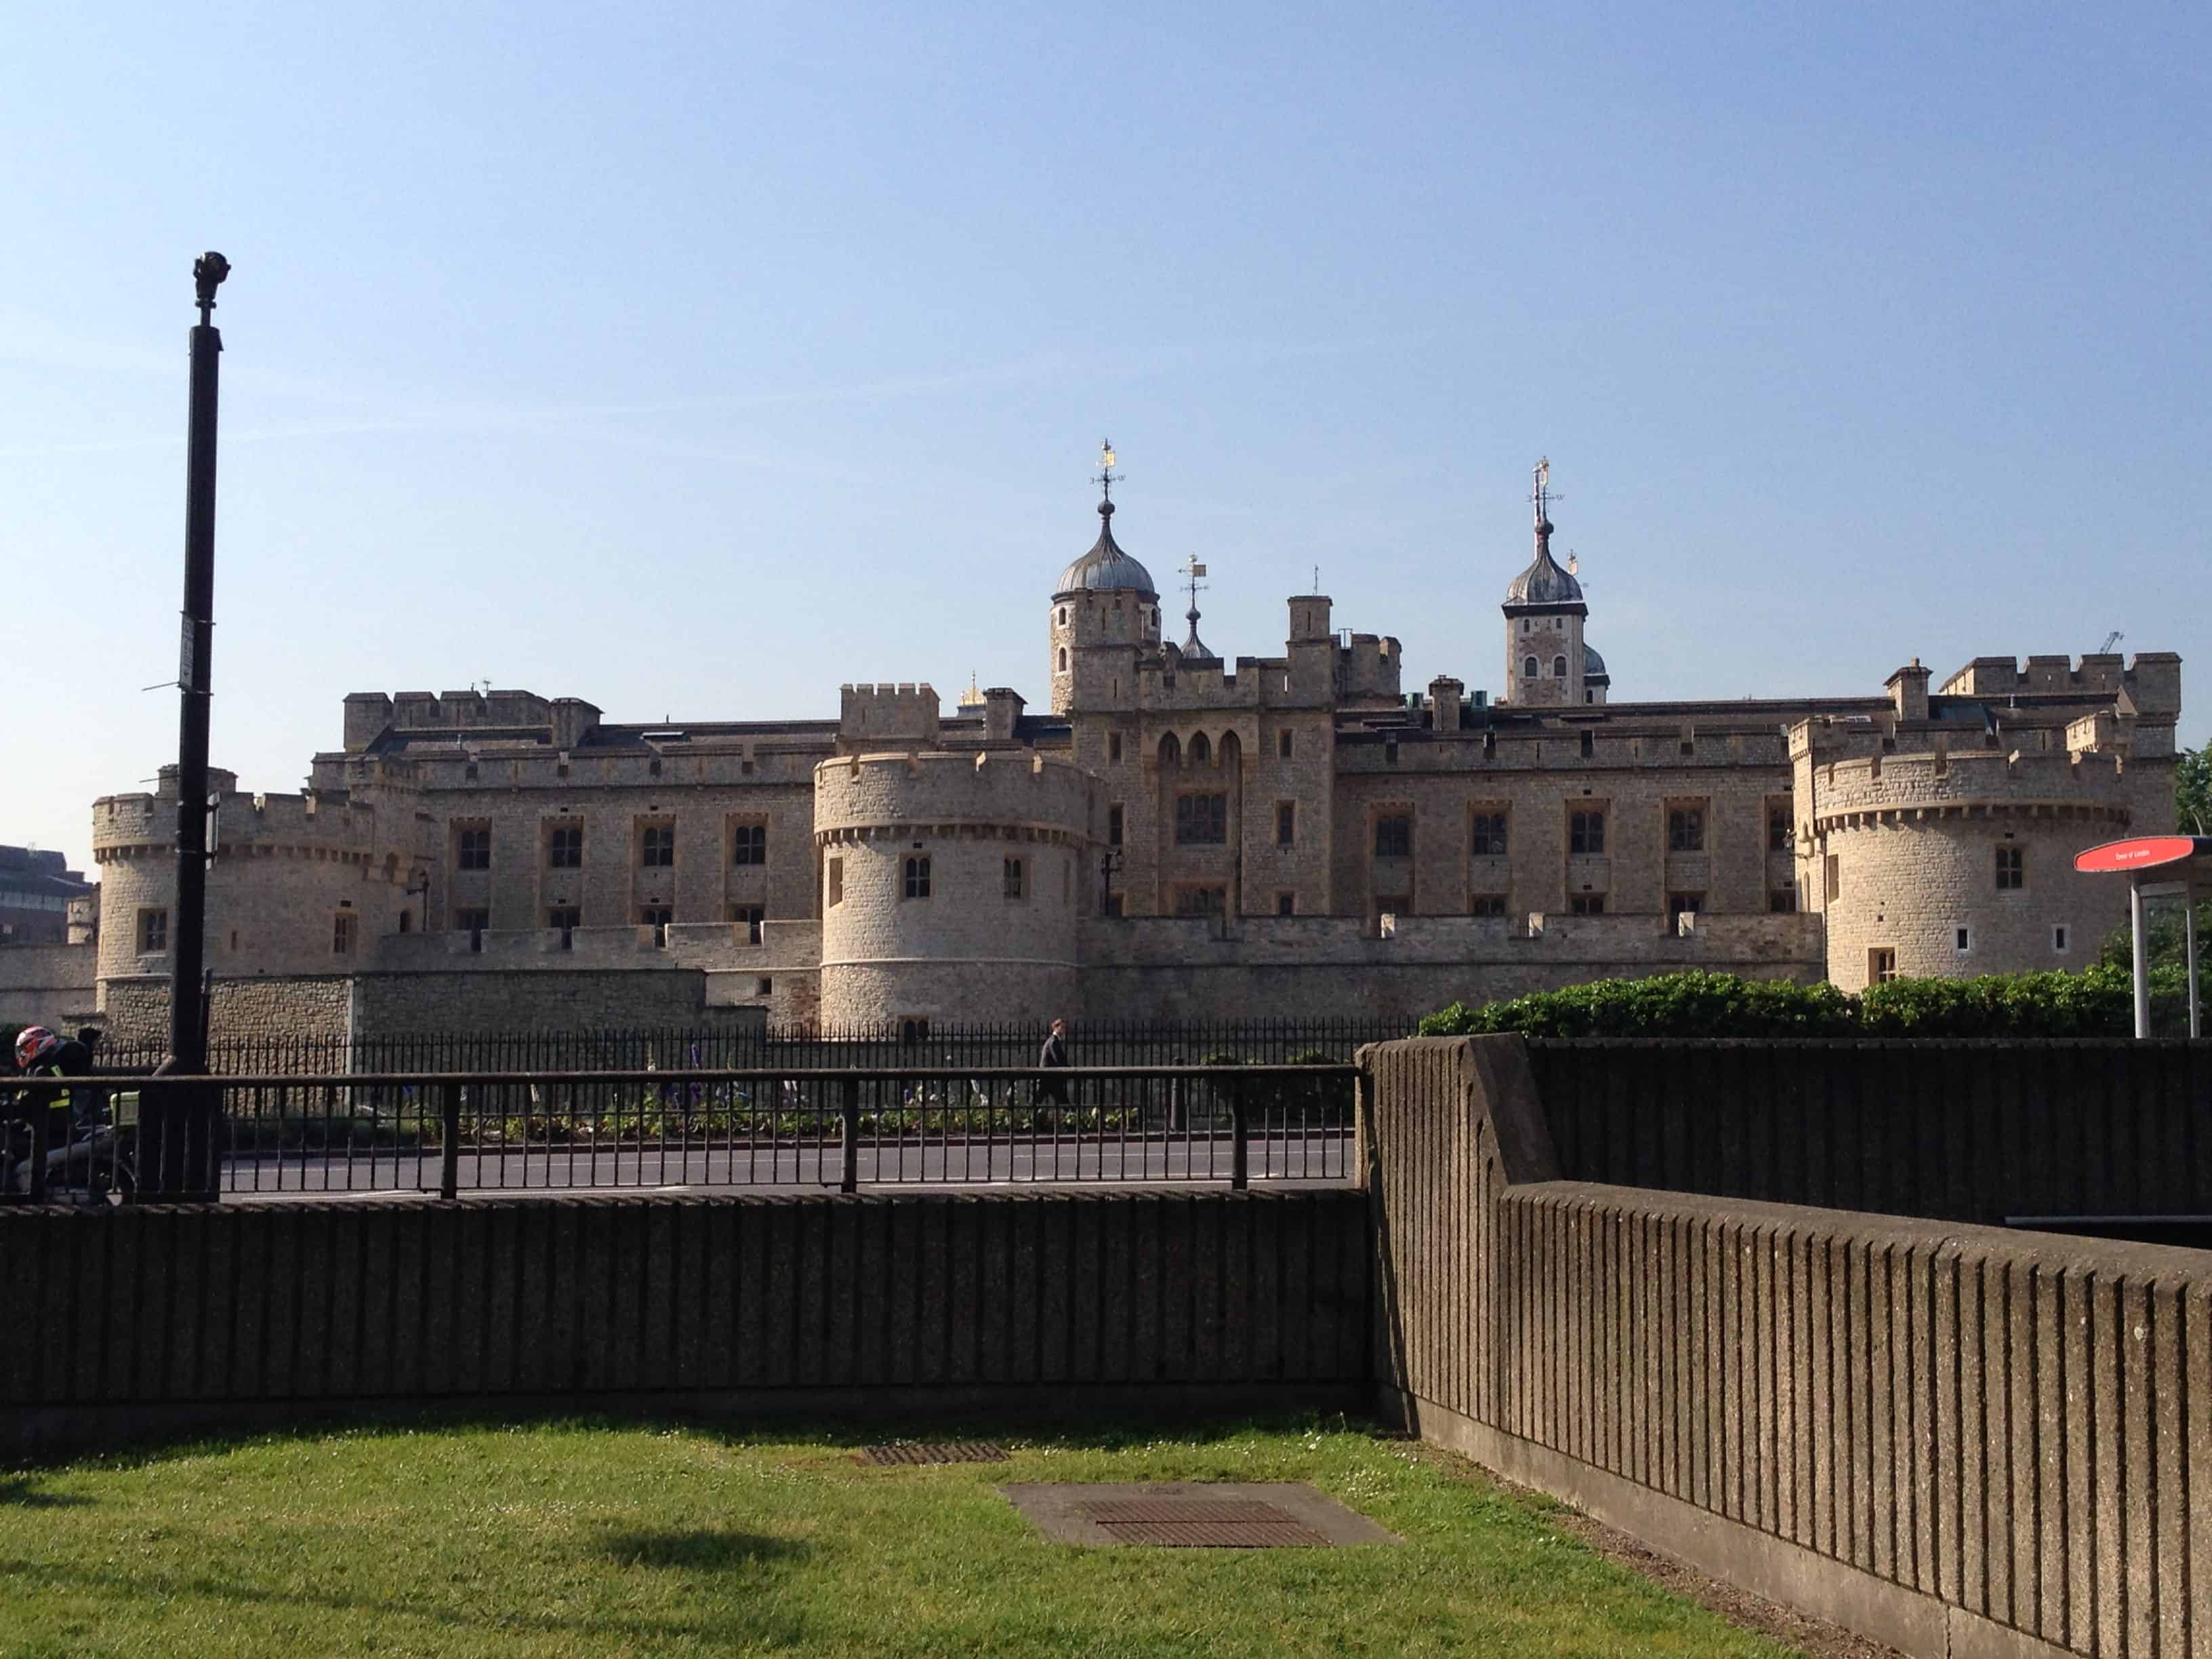 Tower of London Outside